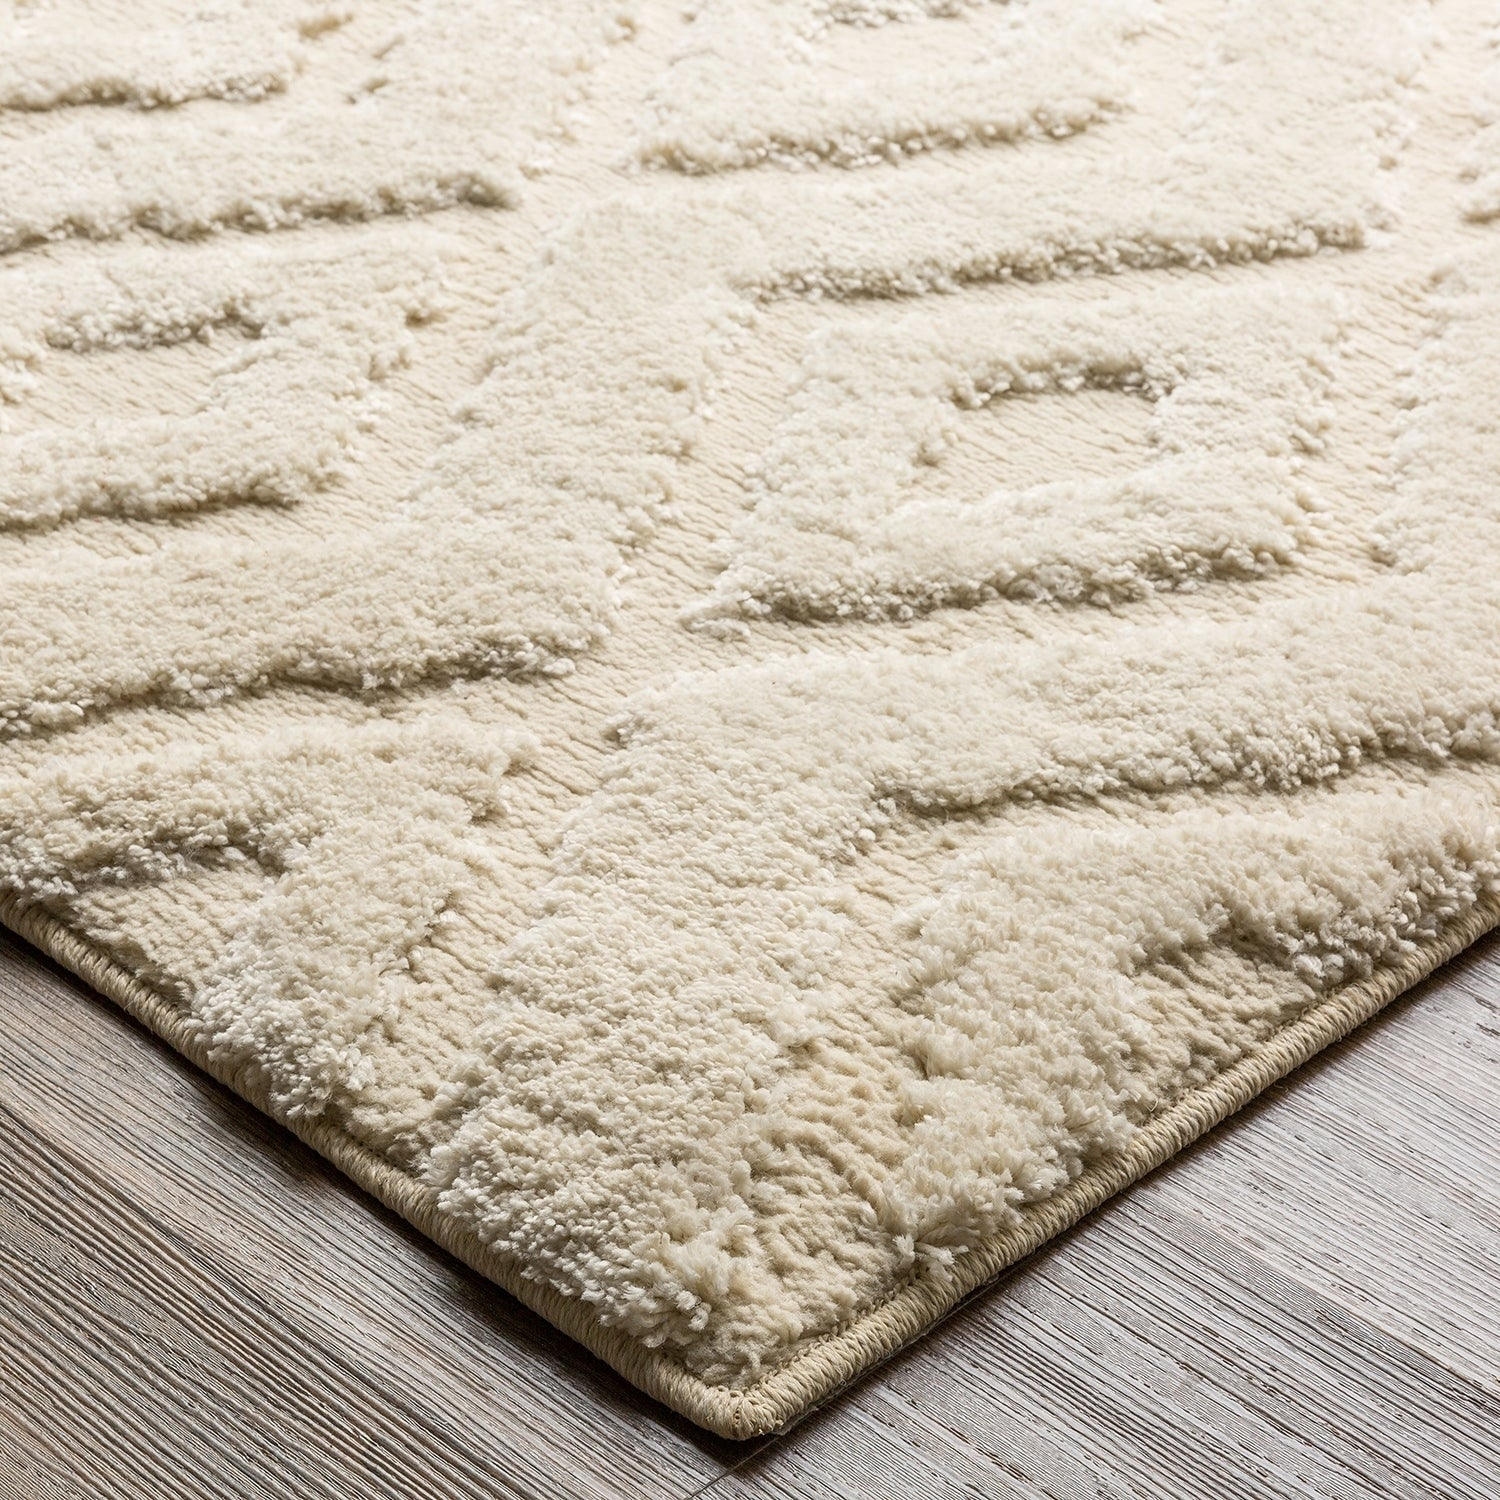 Cream Rug 8 X 10 Droughtrelief Org